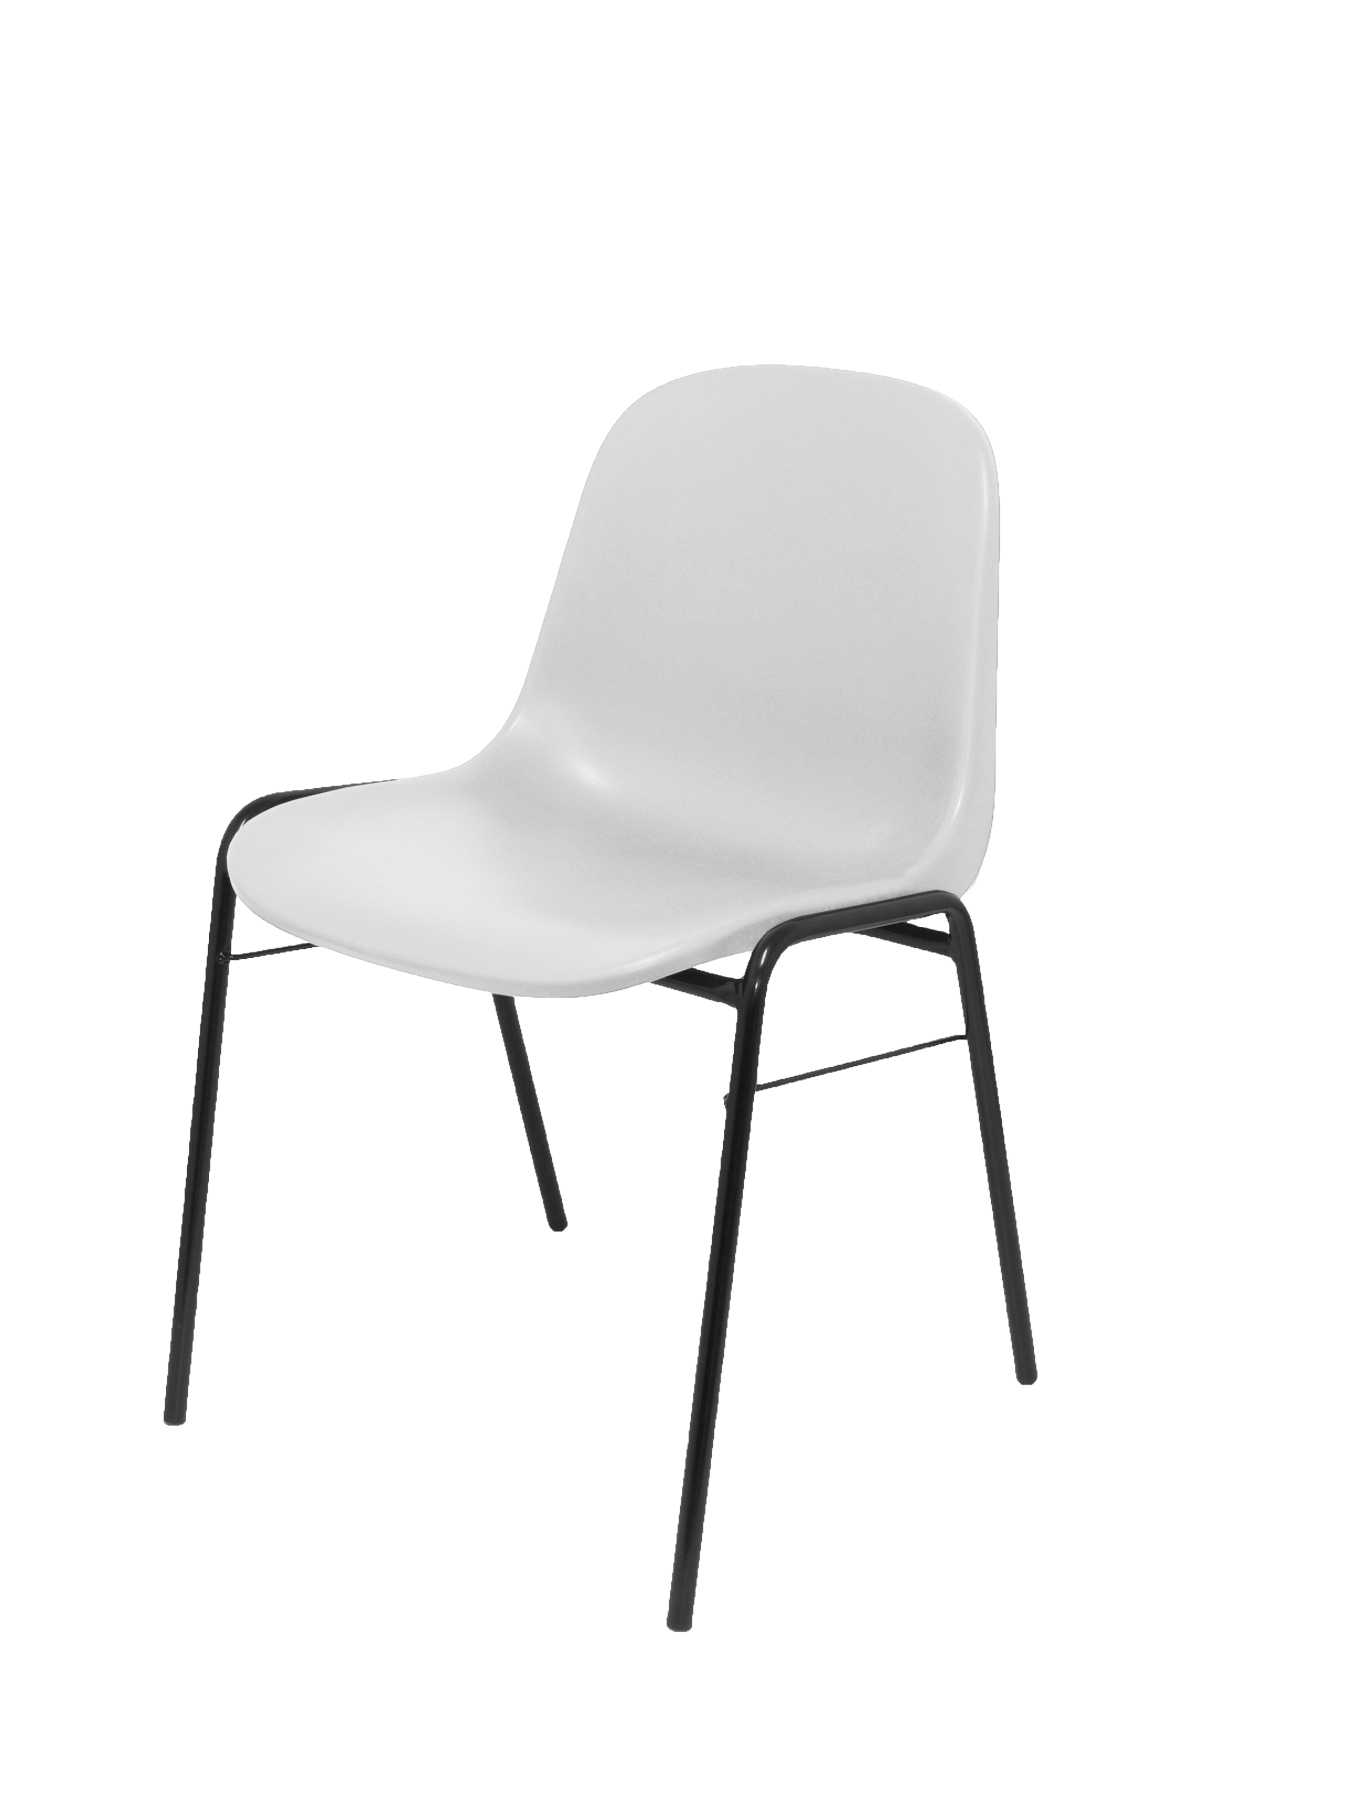 Pack 4 Guest Chairs Desk Ergonomic, Stackable And With Negro Up Seat And Backstop Structure PVC White Color TAPHOLE